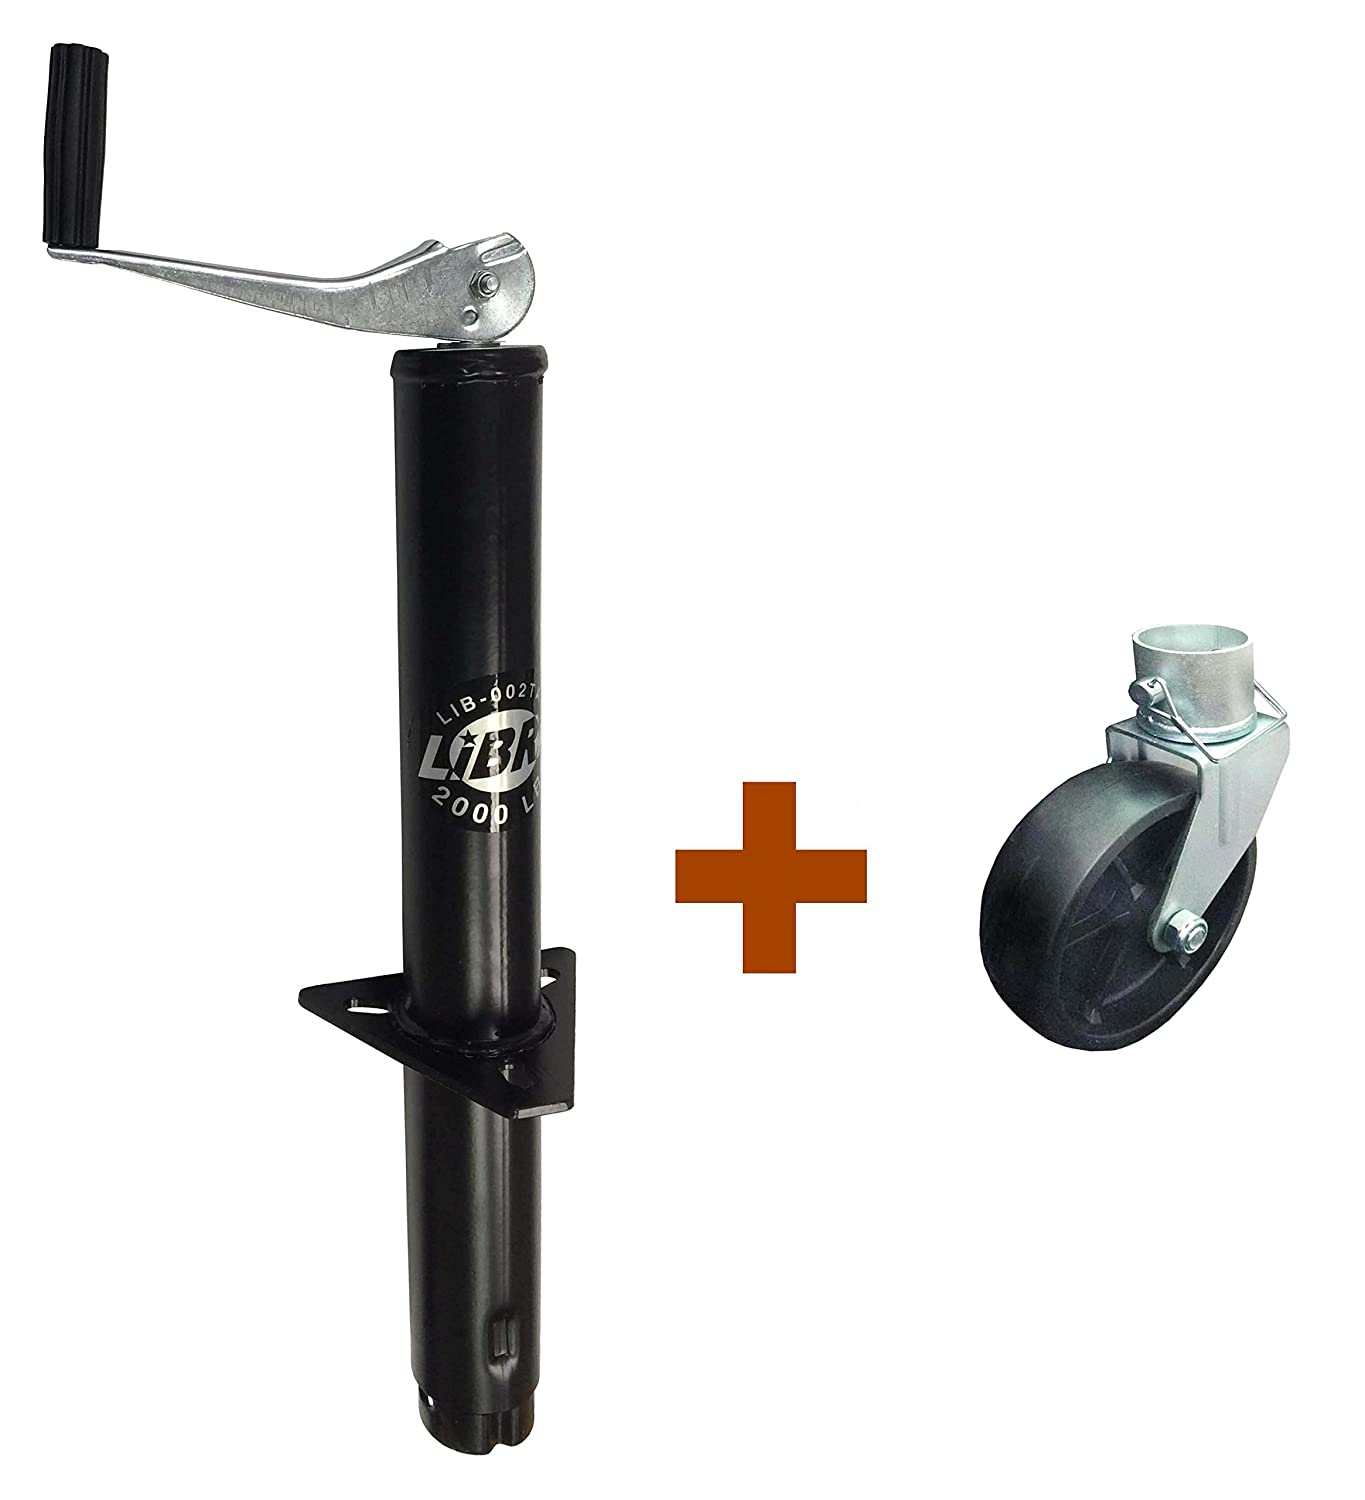 New LIBRA 2000 lbs A Frame Topwind Trailer Camper RV Tongue Jack with 6' Caster wheel 26003/26024